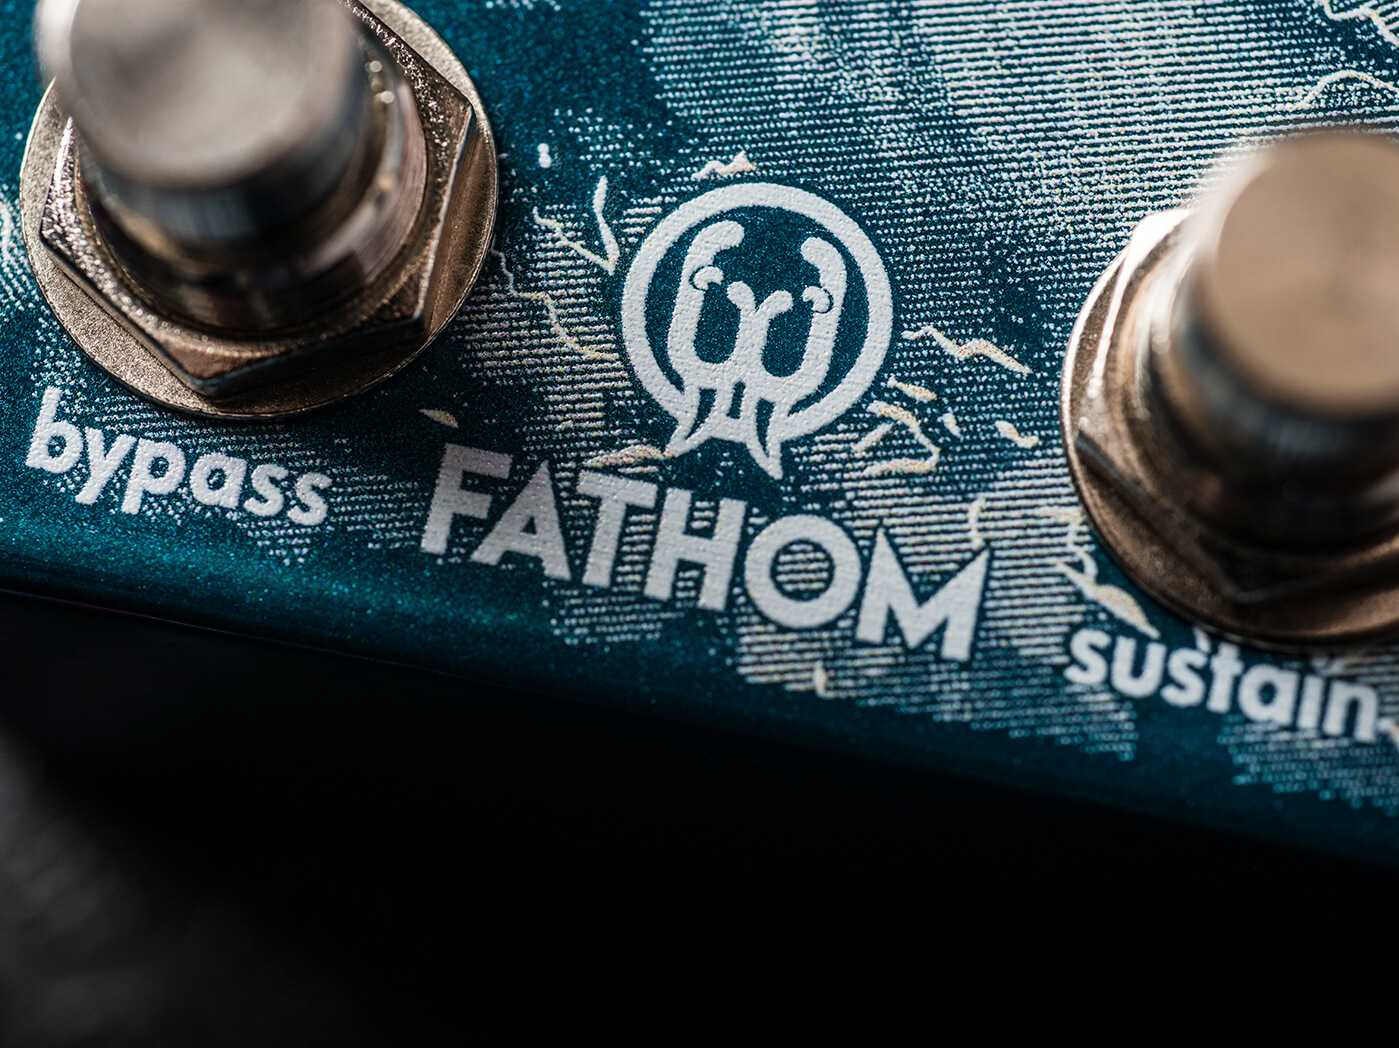 Review Walrus Fathom footswitches